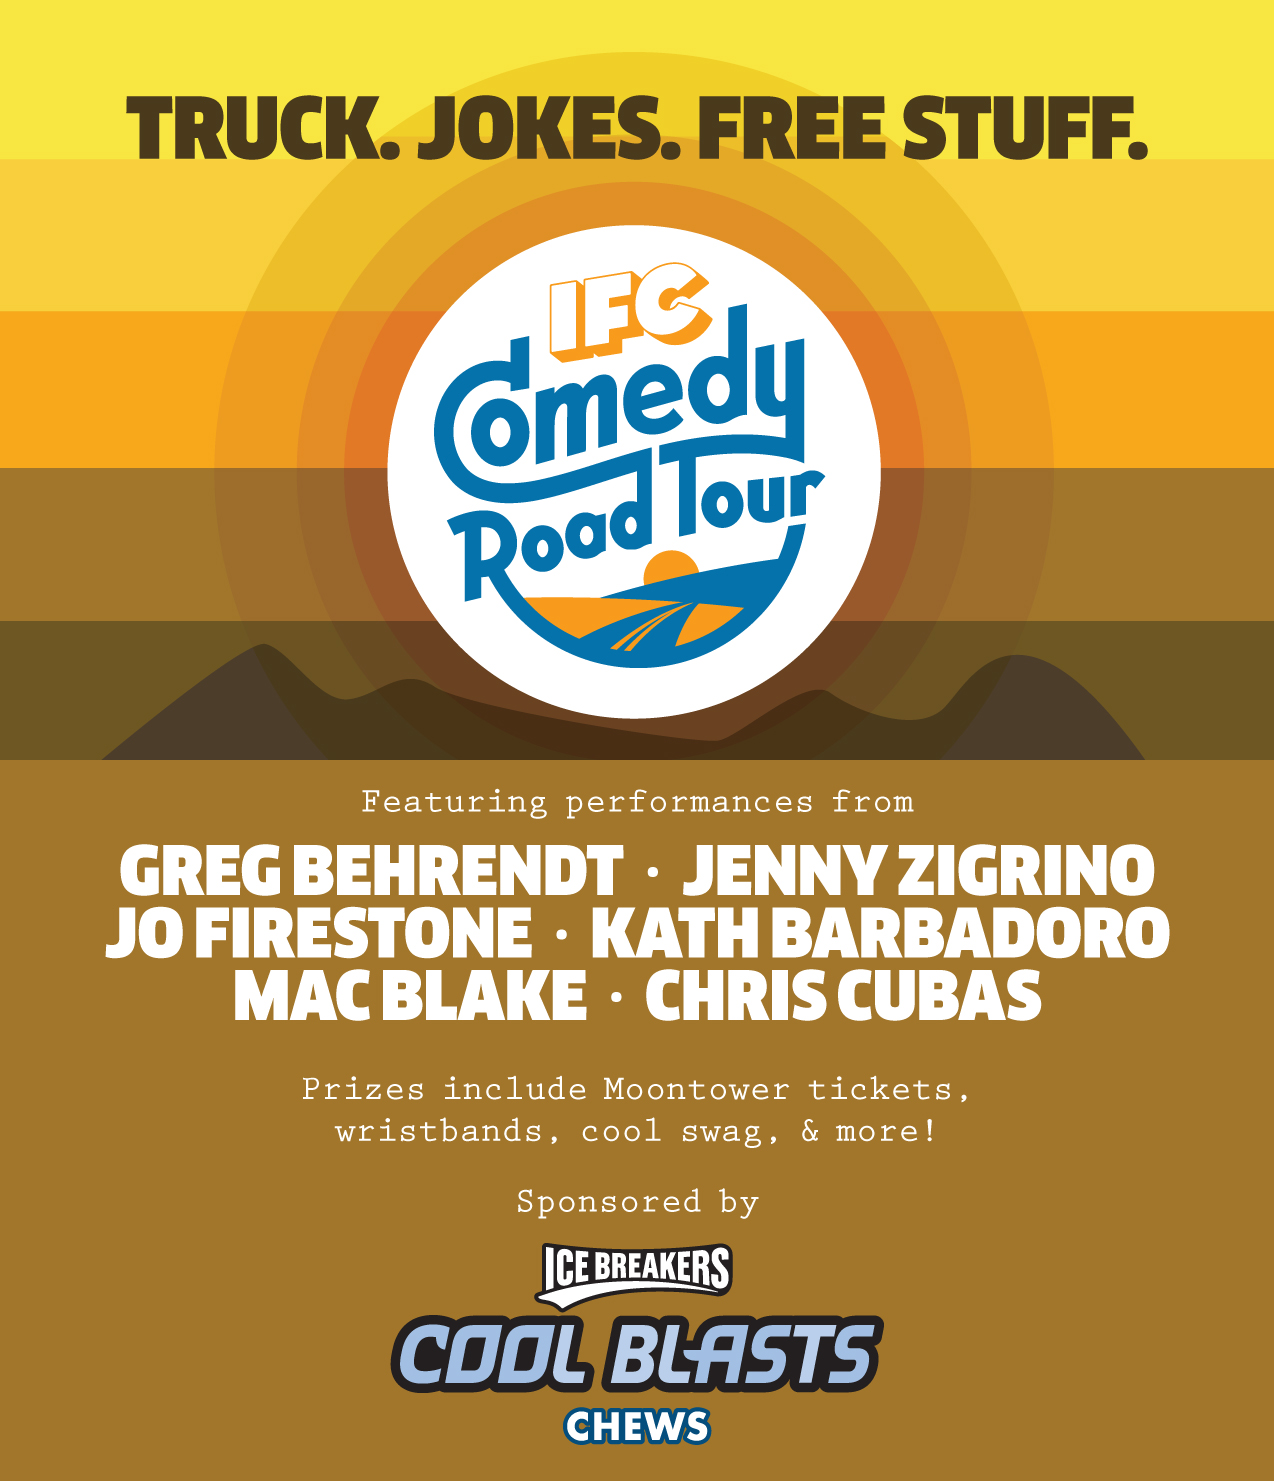 Comedy-Road-Tour-Moontower-flyer-front-v06[2]